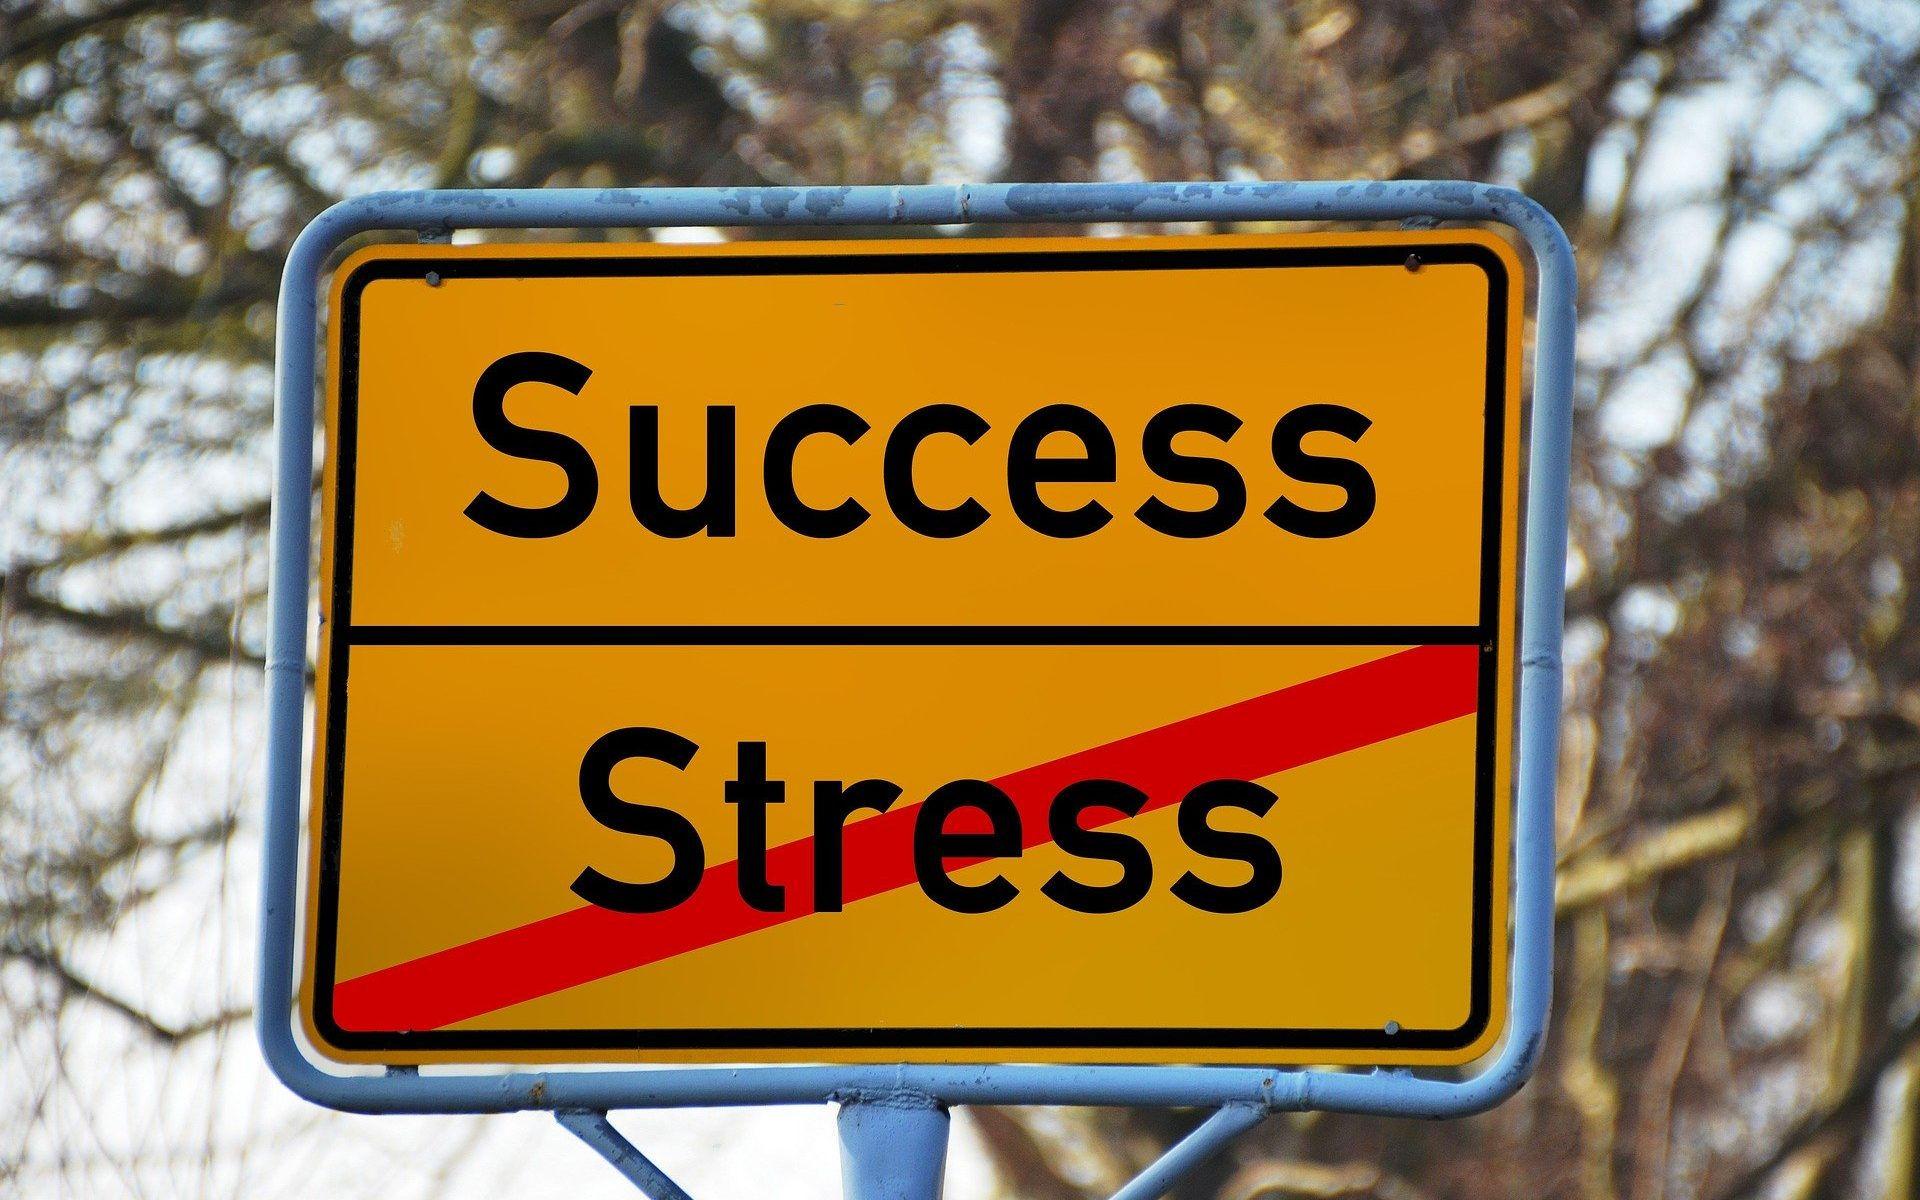 Method to deal with stress